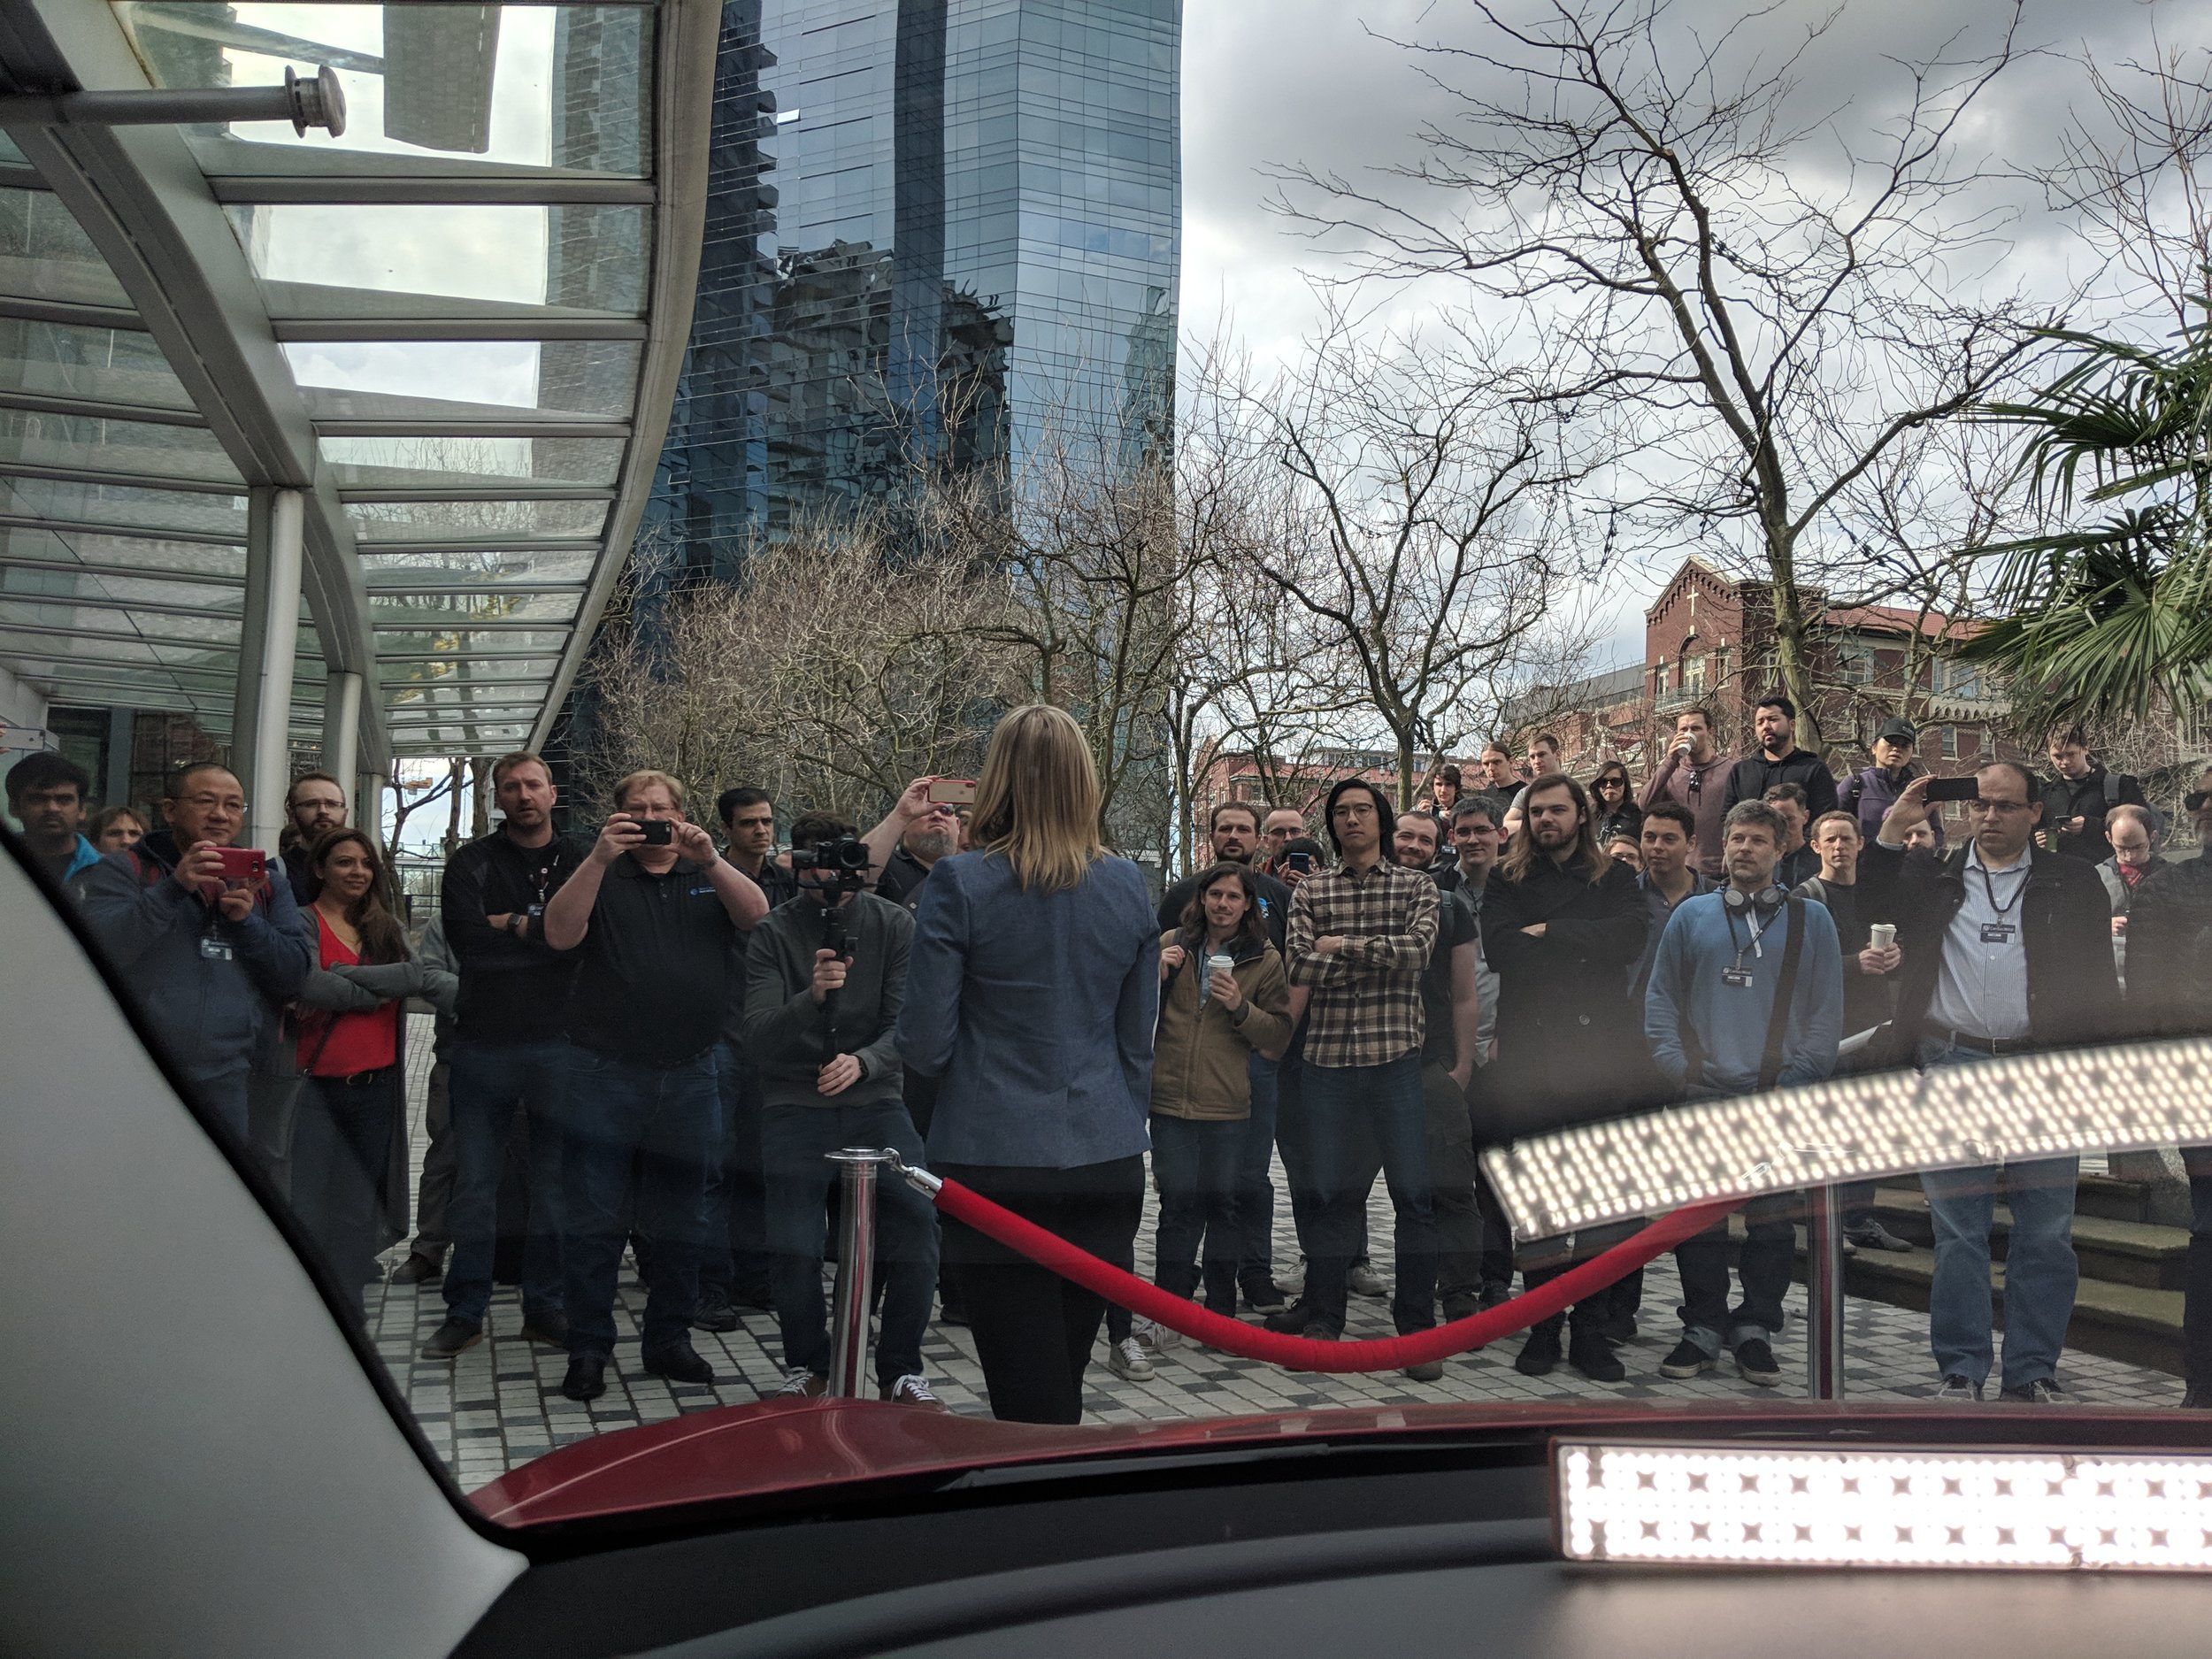 The assembled crowd viewed from within the vehicle